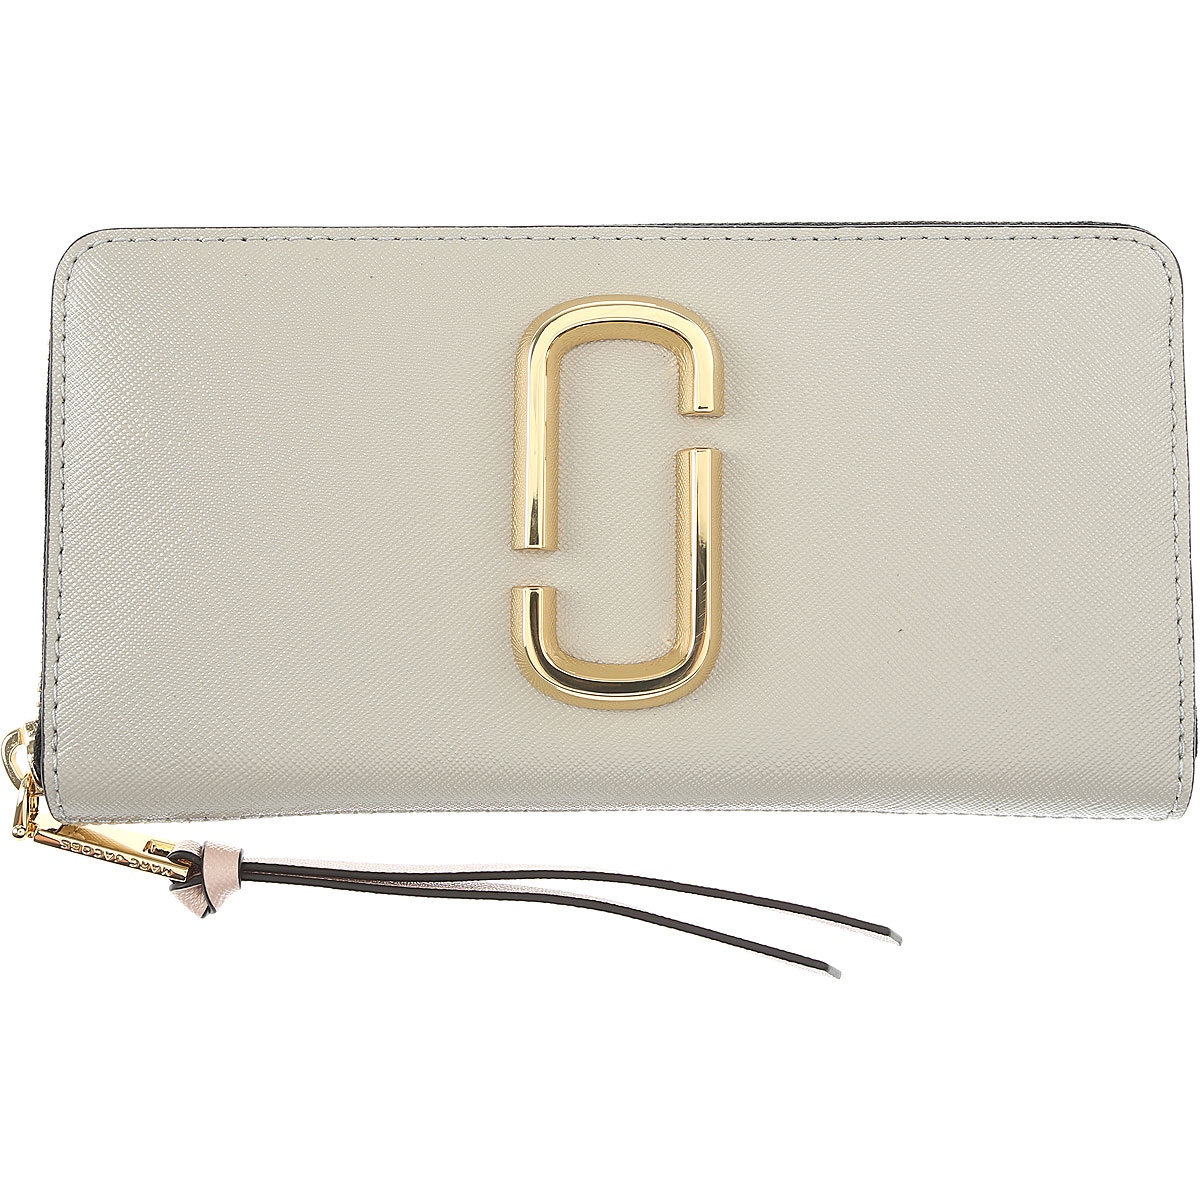 Marc Jacobs Wallet for Women Pearl Grey USA - GOOFASH